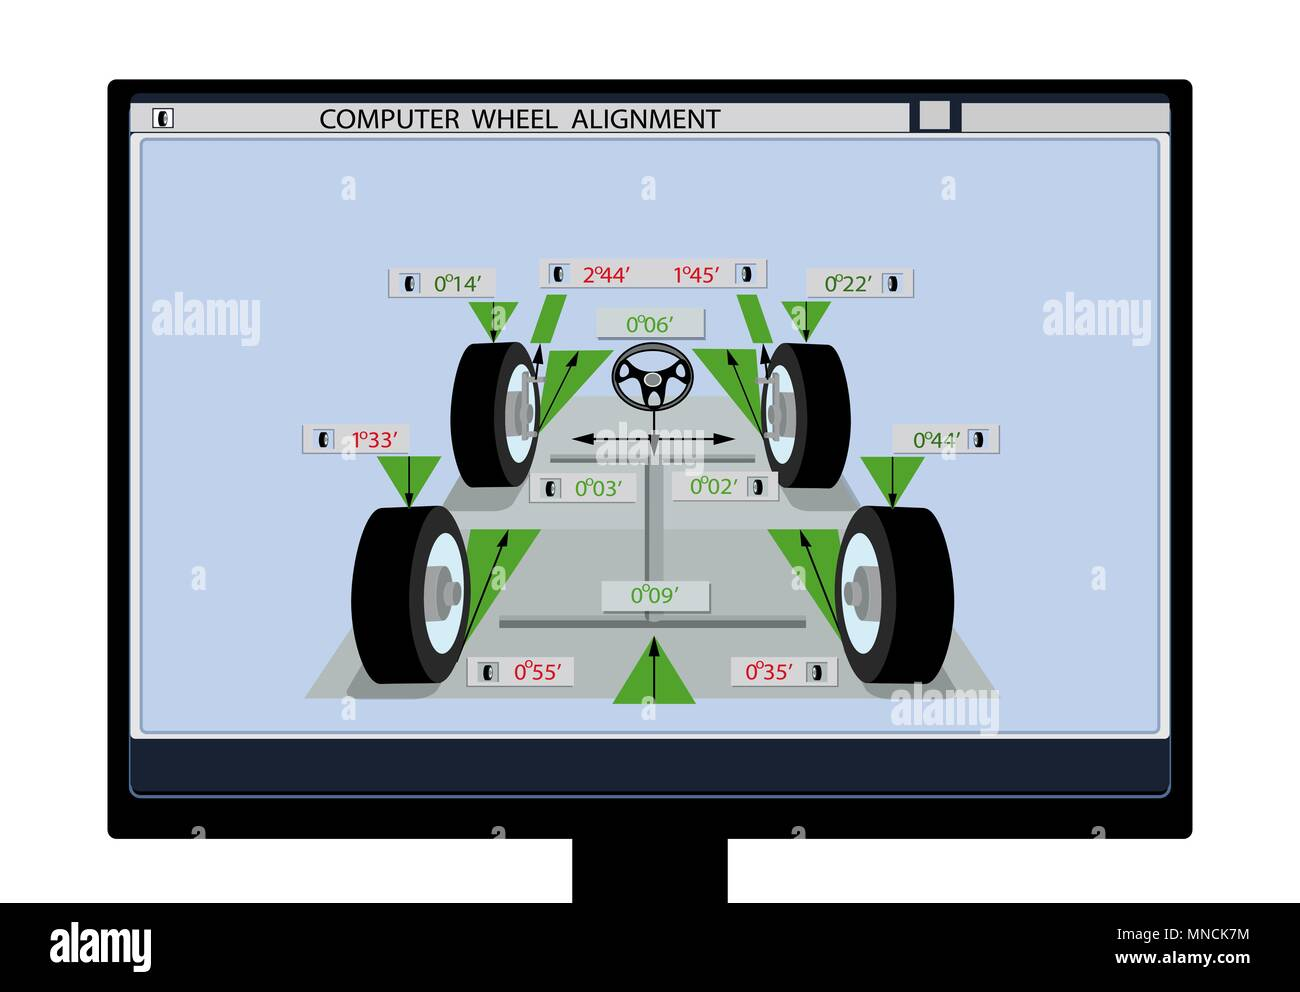 Car Service An Image Of A Schematic With Sensors On Wheels Computer Monitor Wheel Alignment Illustration